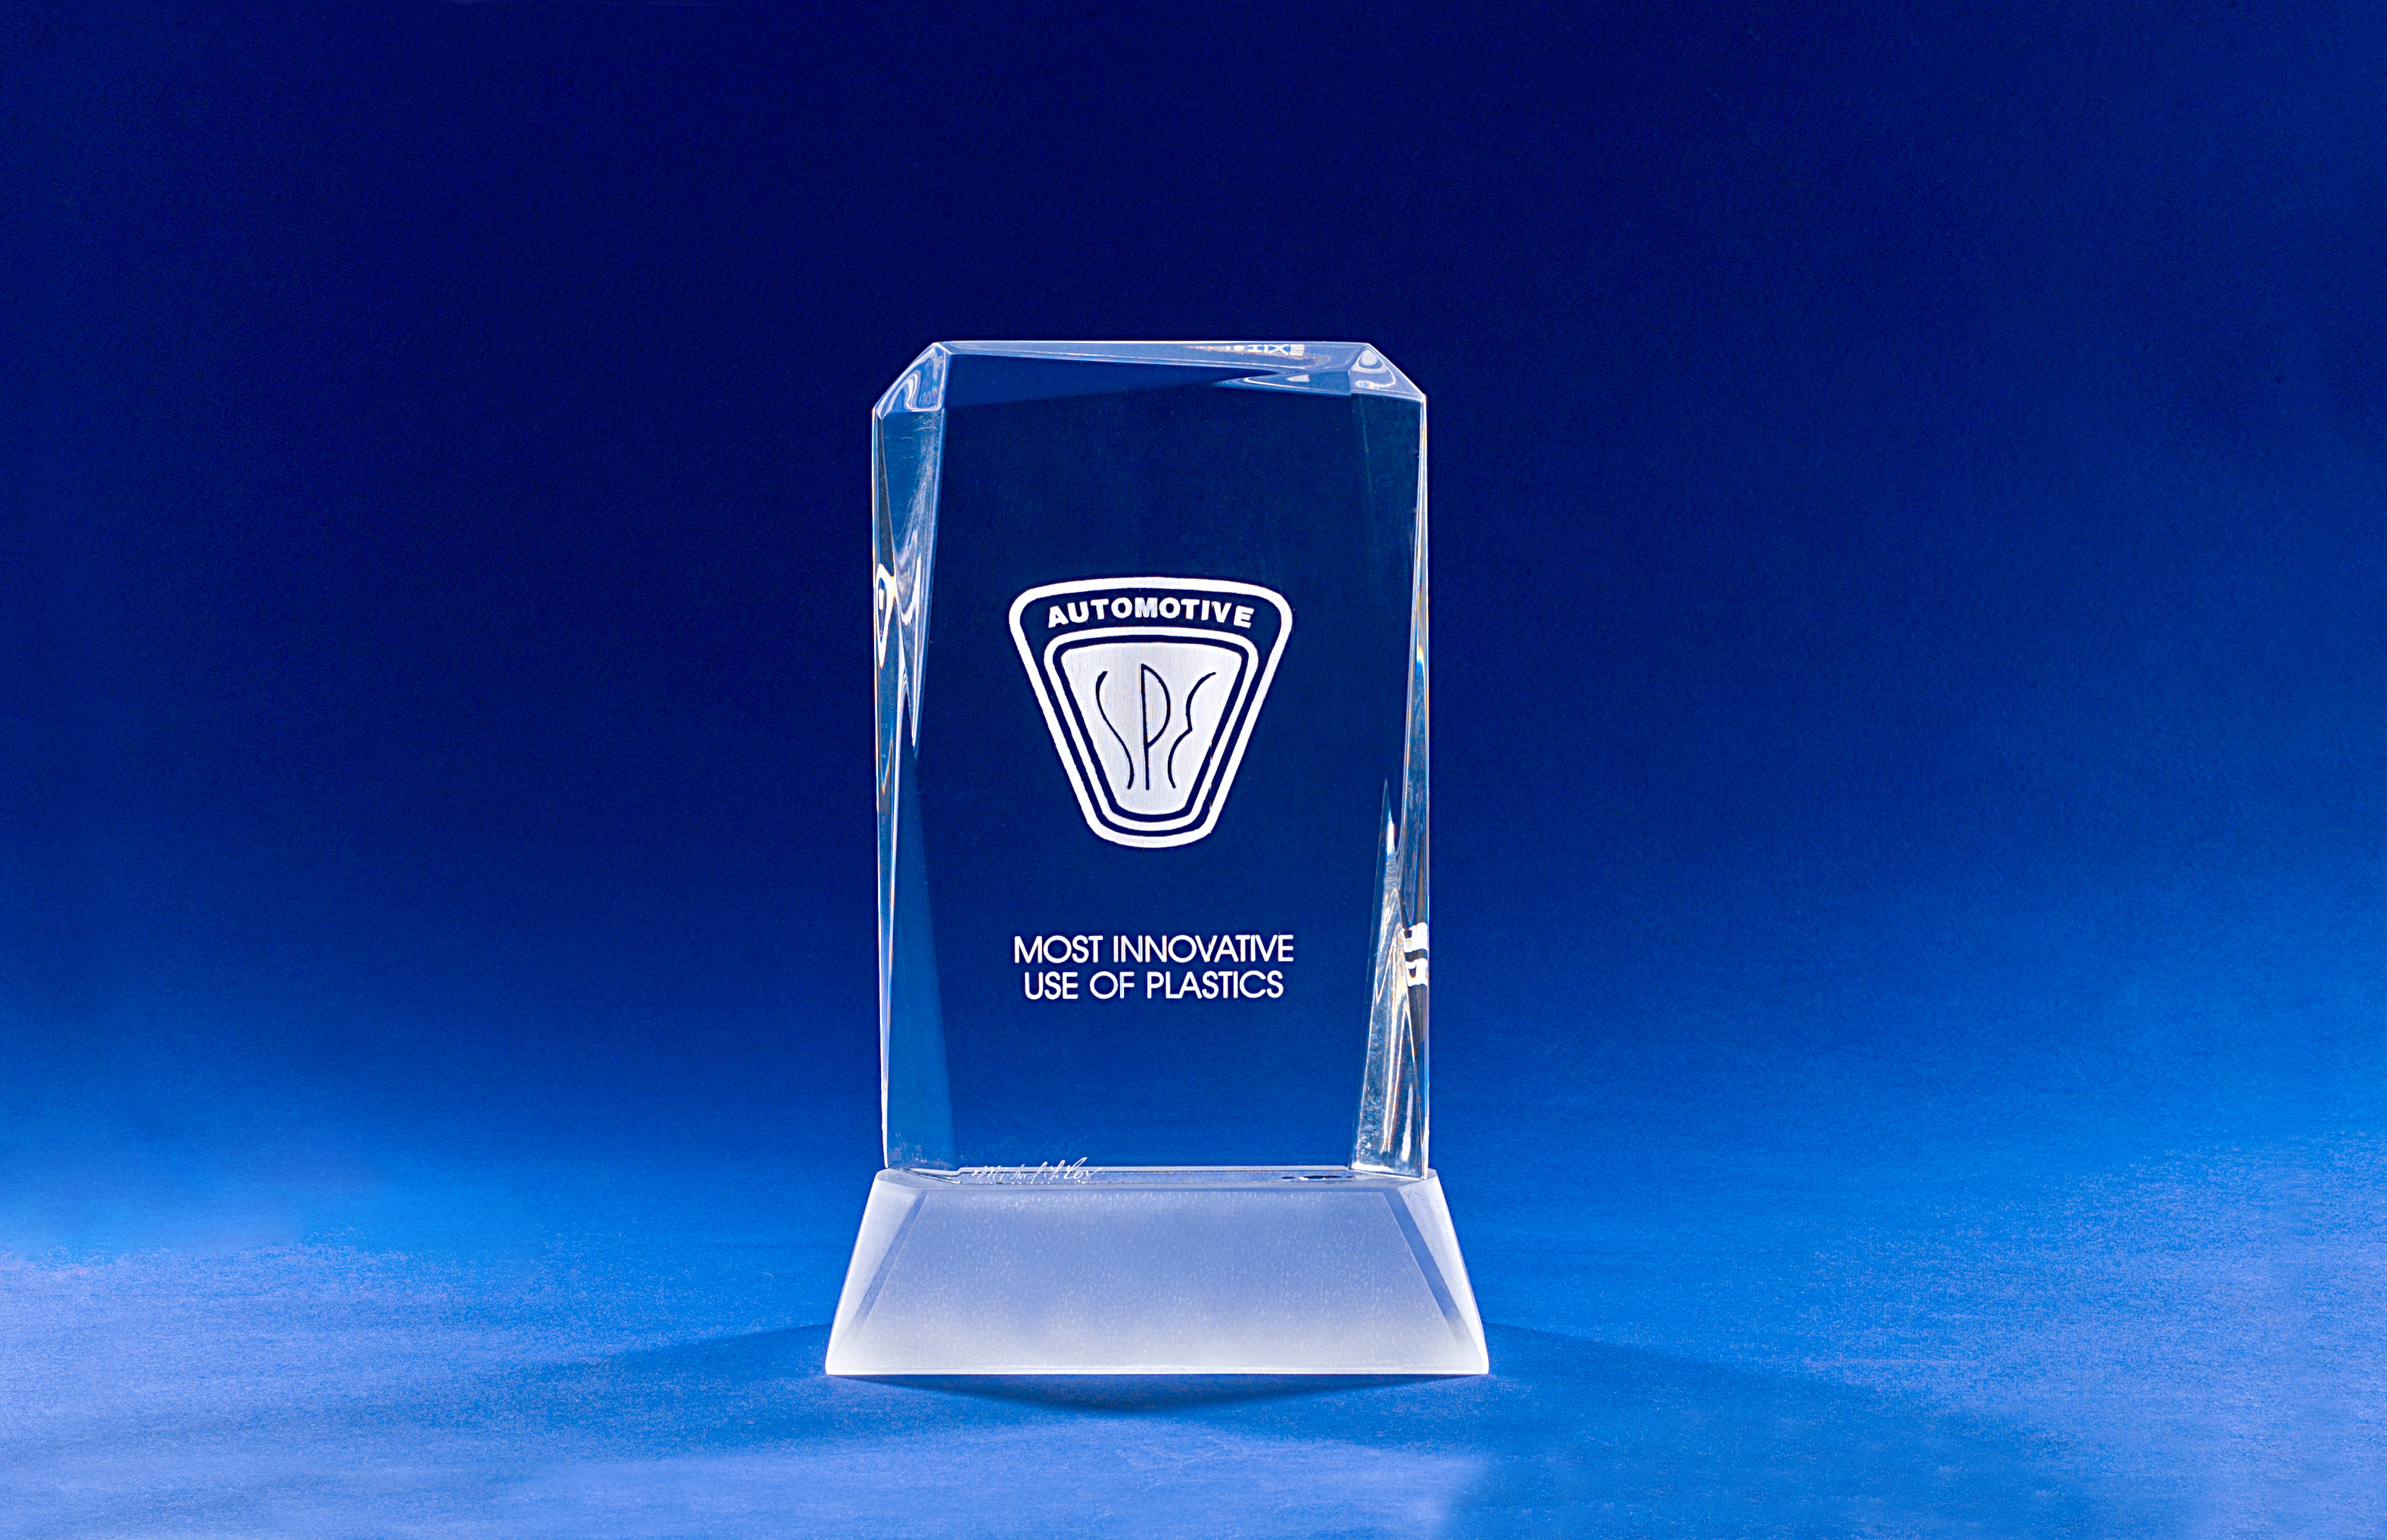 The Automotive Award of SPE Central Europe is awarded to innovative vehicle parts and components made of plastic. (Source: SPE Central Europe)